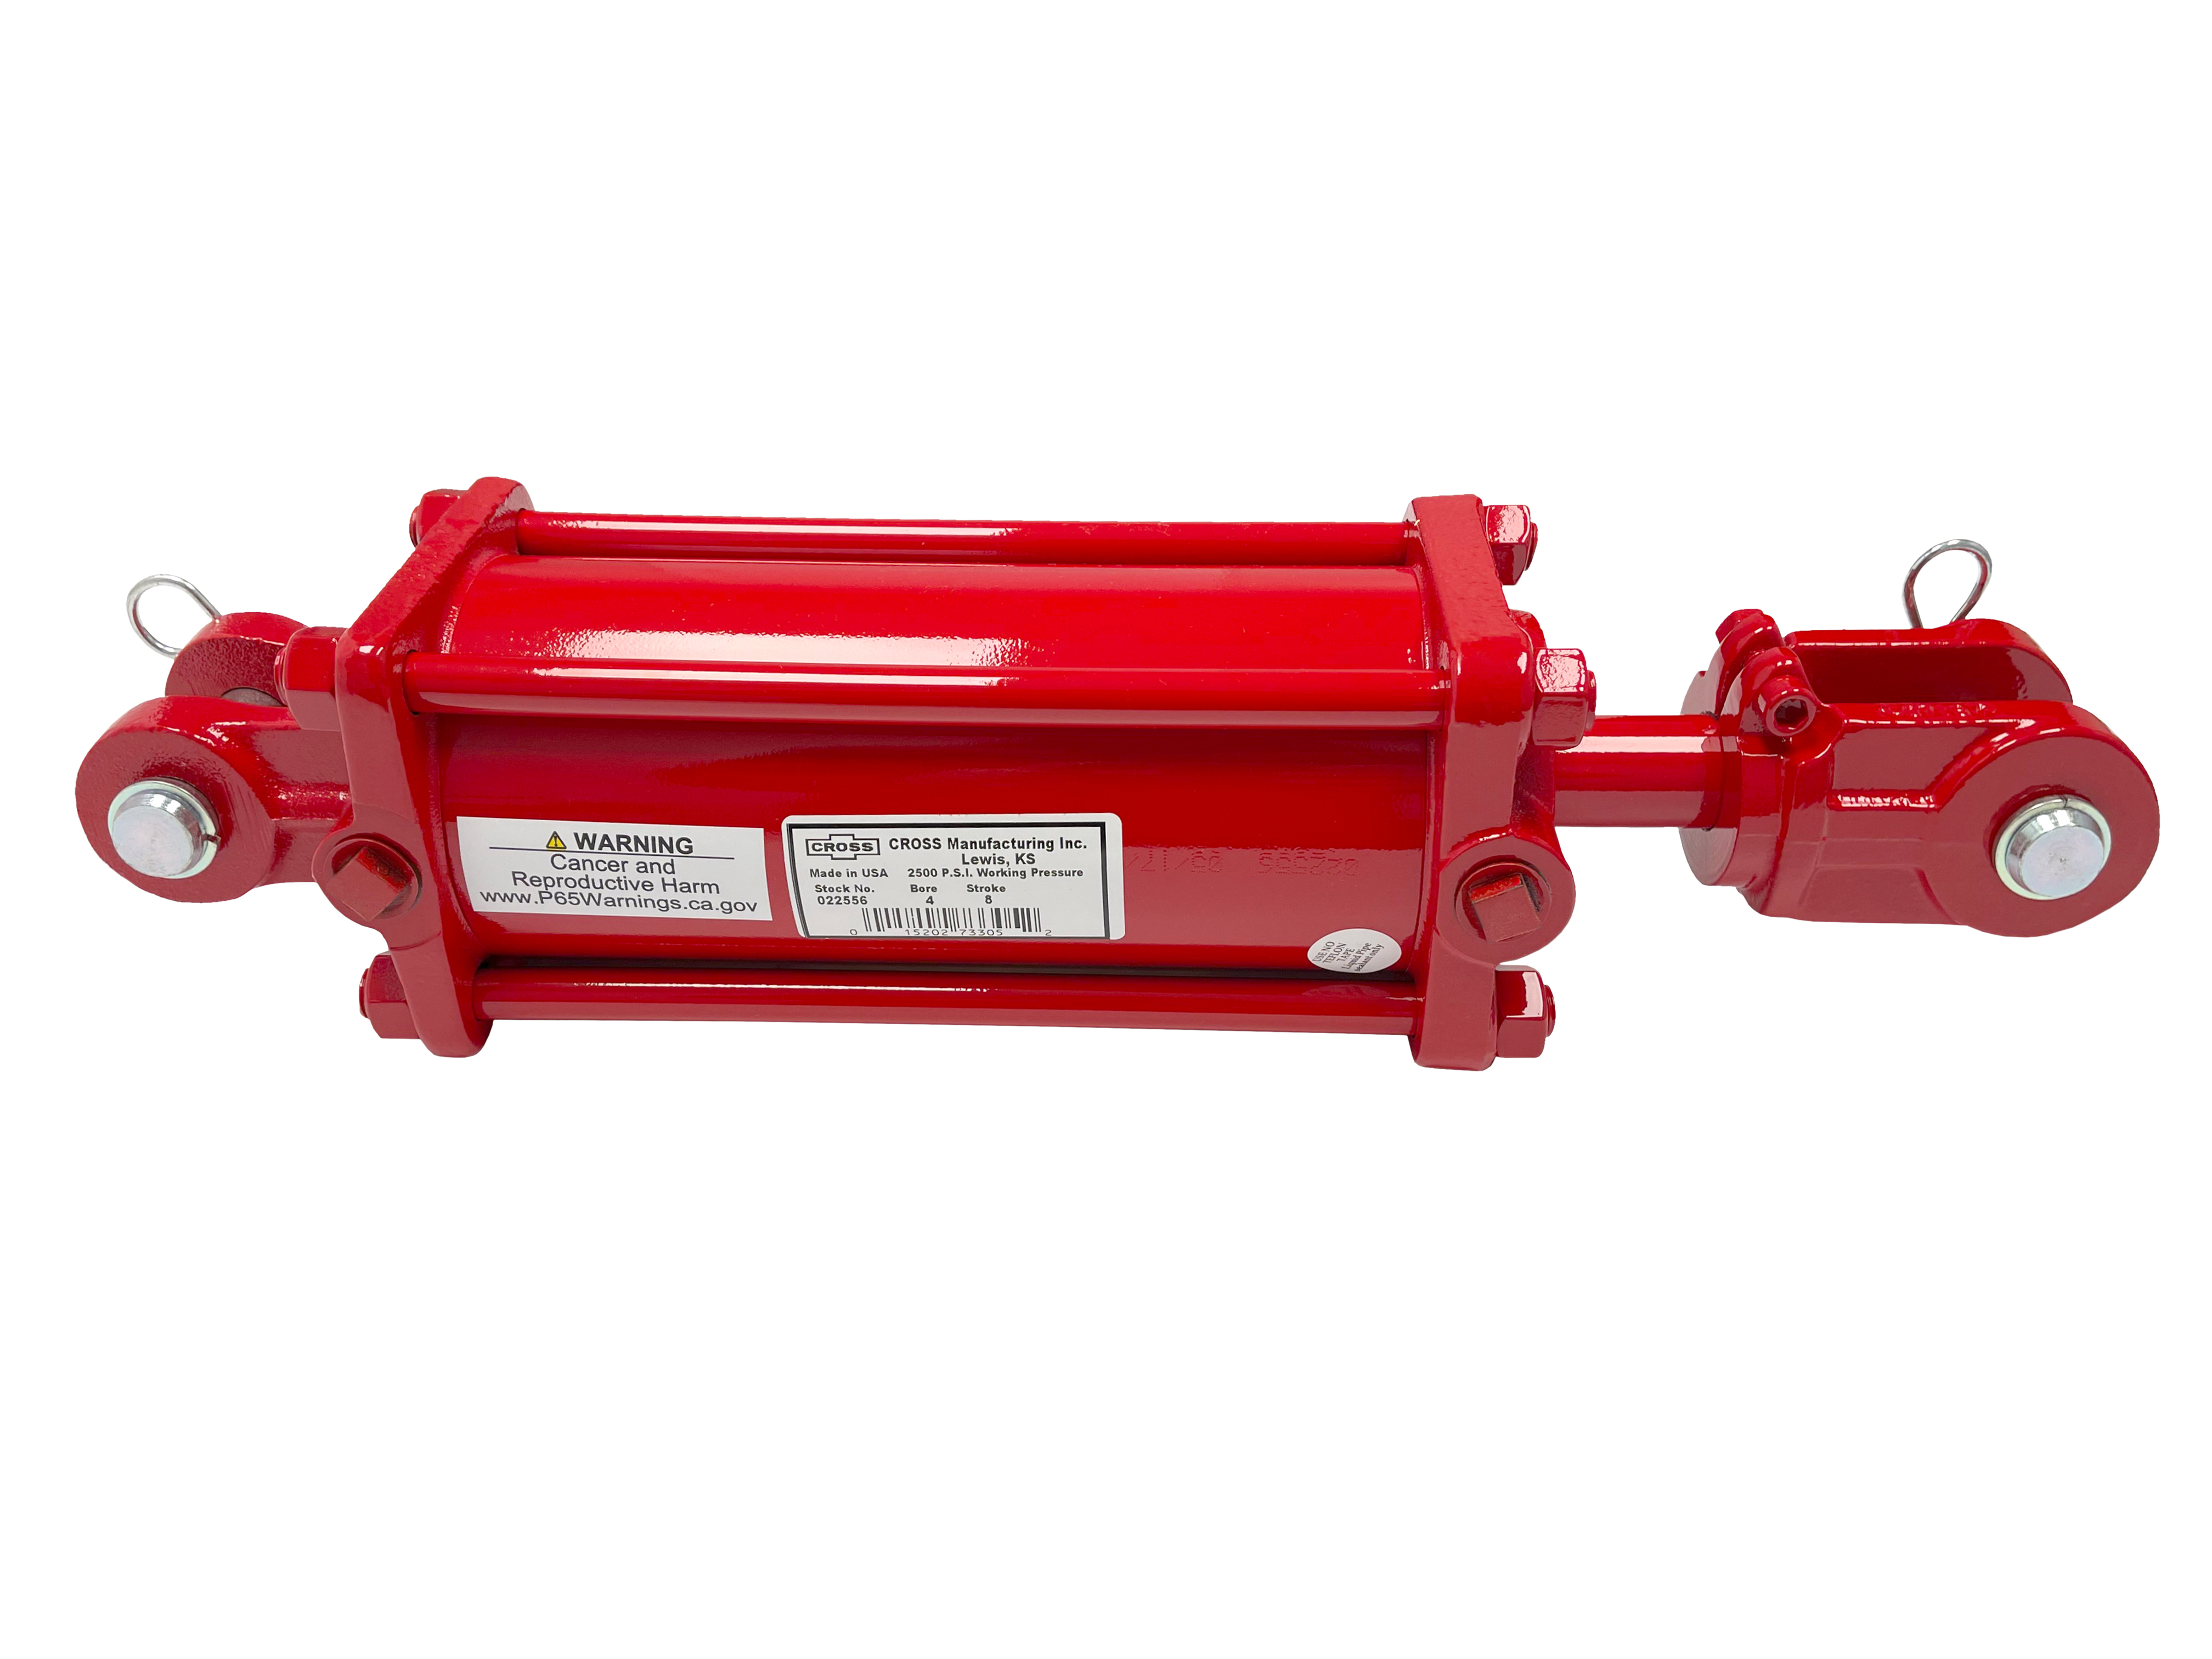 4 bore x 8 stroke CROSS rephasing hydraulic cylinder, tie rod double acting cylinder DR series | CROSS MANUFACTURING